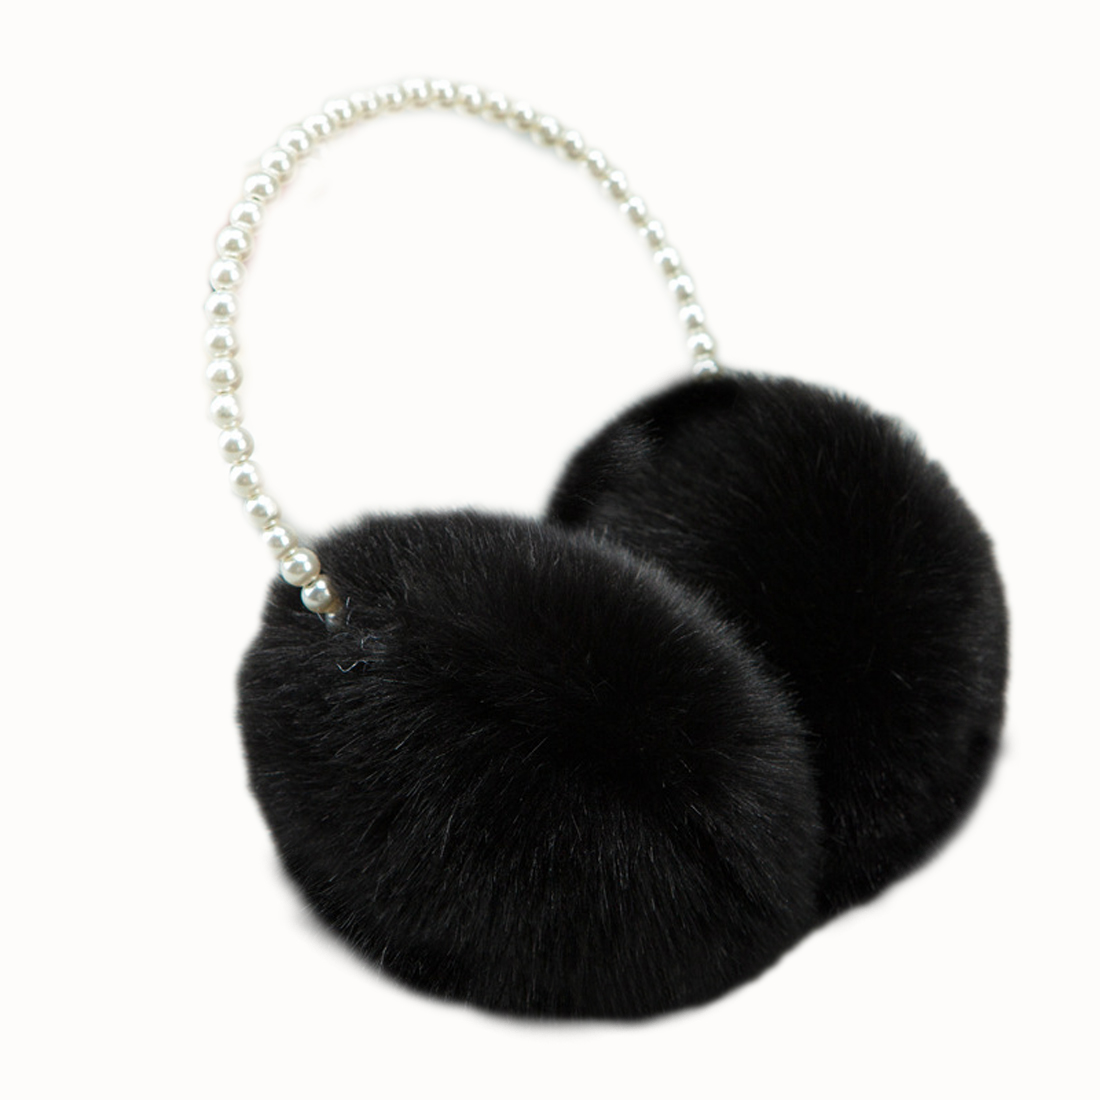 2018 Pearl Winter Earmuff  Rabbit Fur Women Earmuffs Winter Ear Warmers Ear Cover Women Big Plush Warm Earmuffs